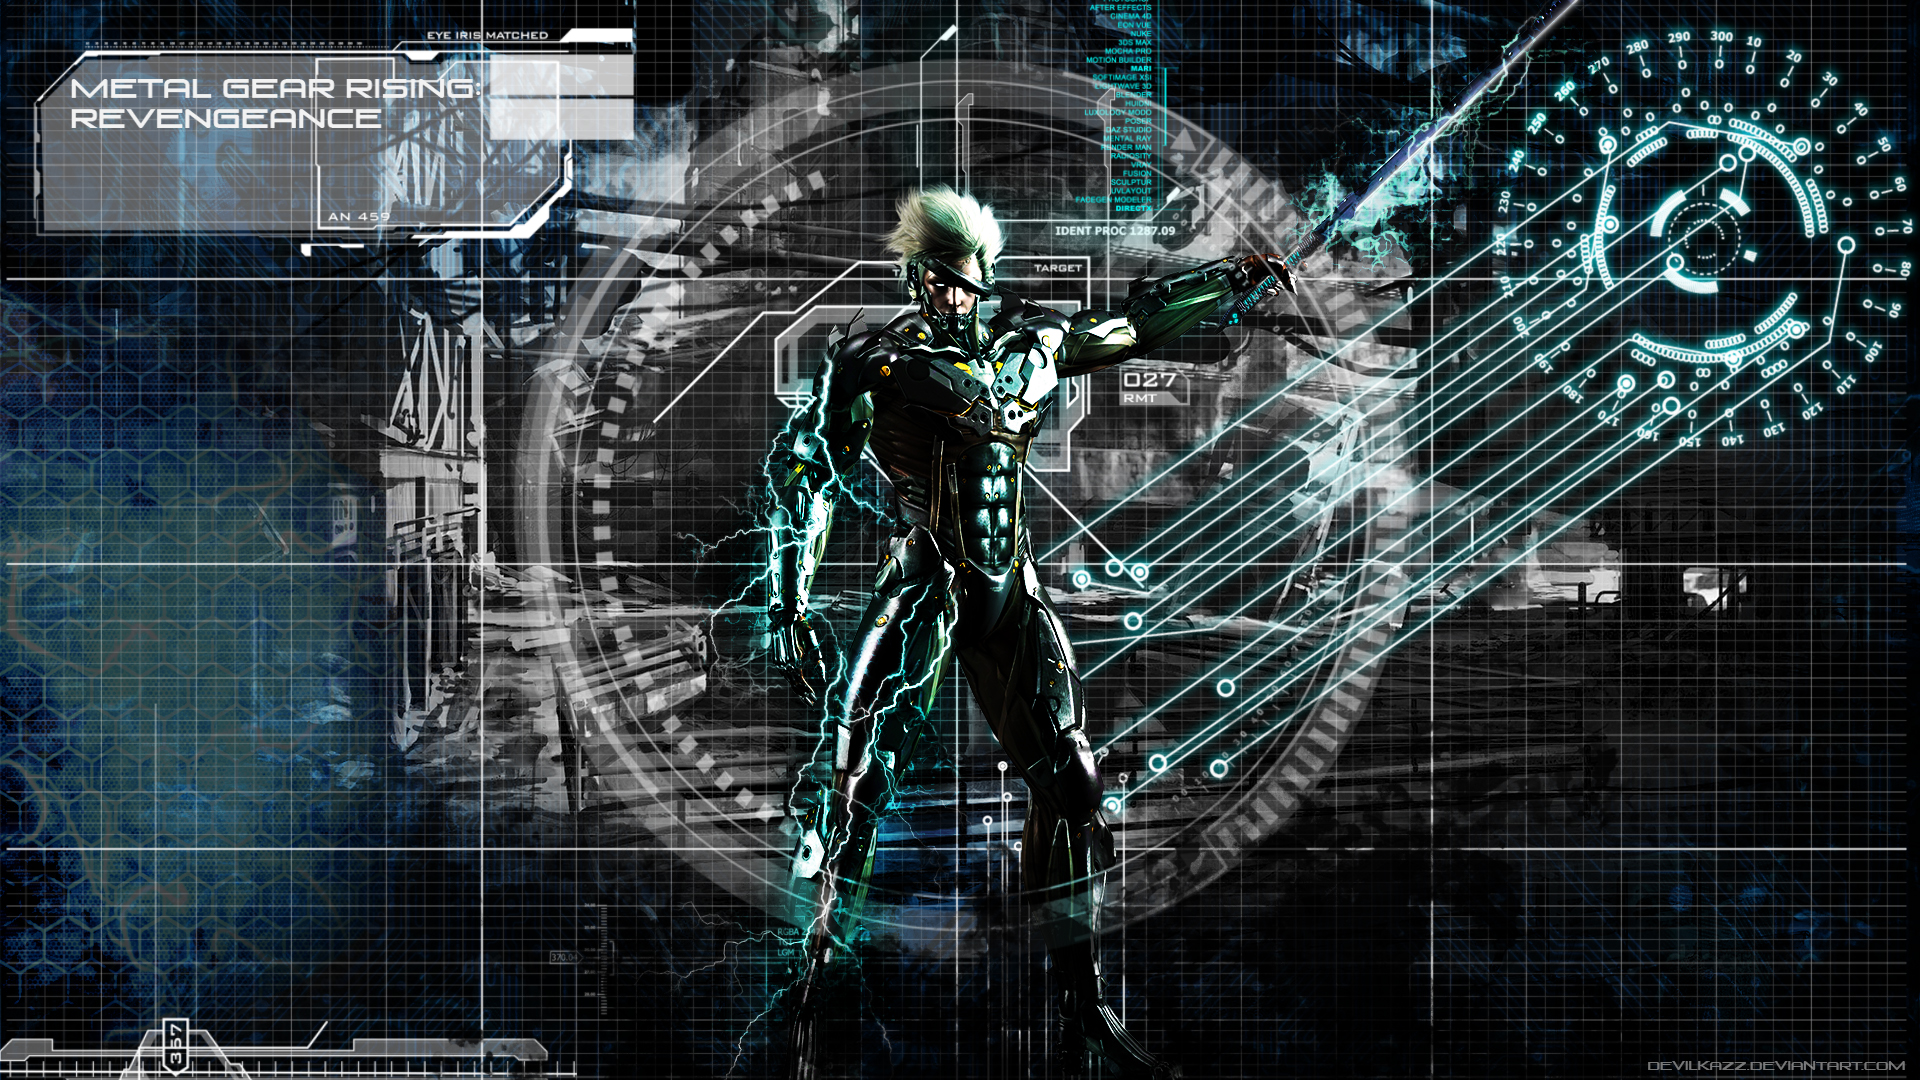 Metal gear rising revengeance by devilkazz on deviantart metal gear rising revengeance by devilkazz voltagebd Image collections